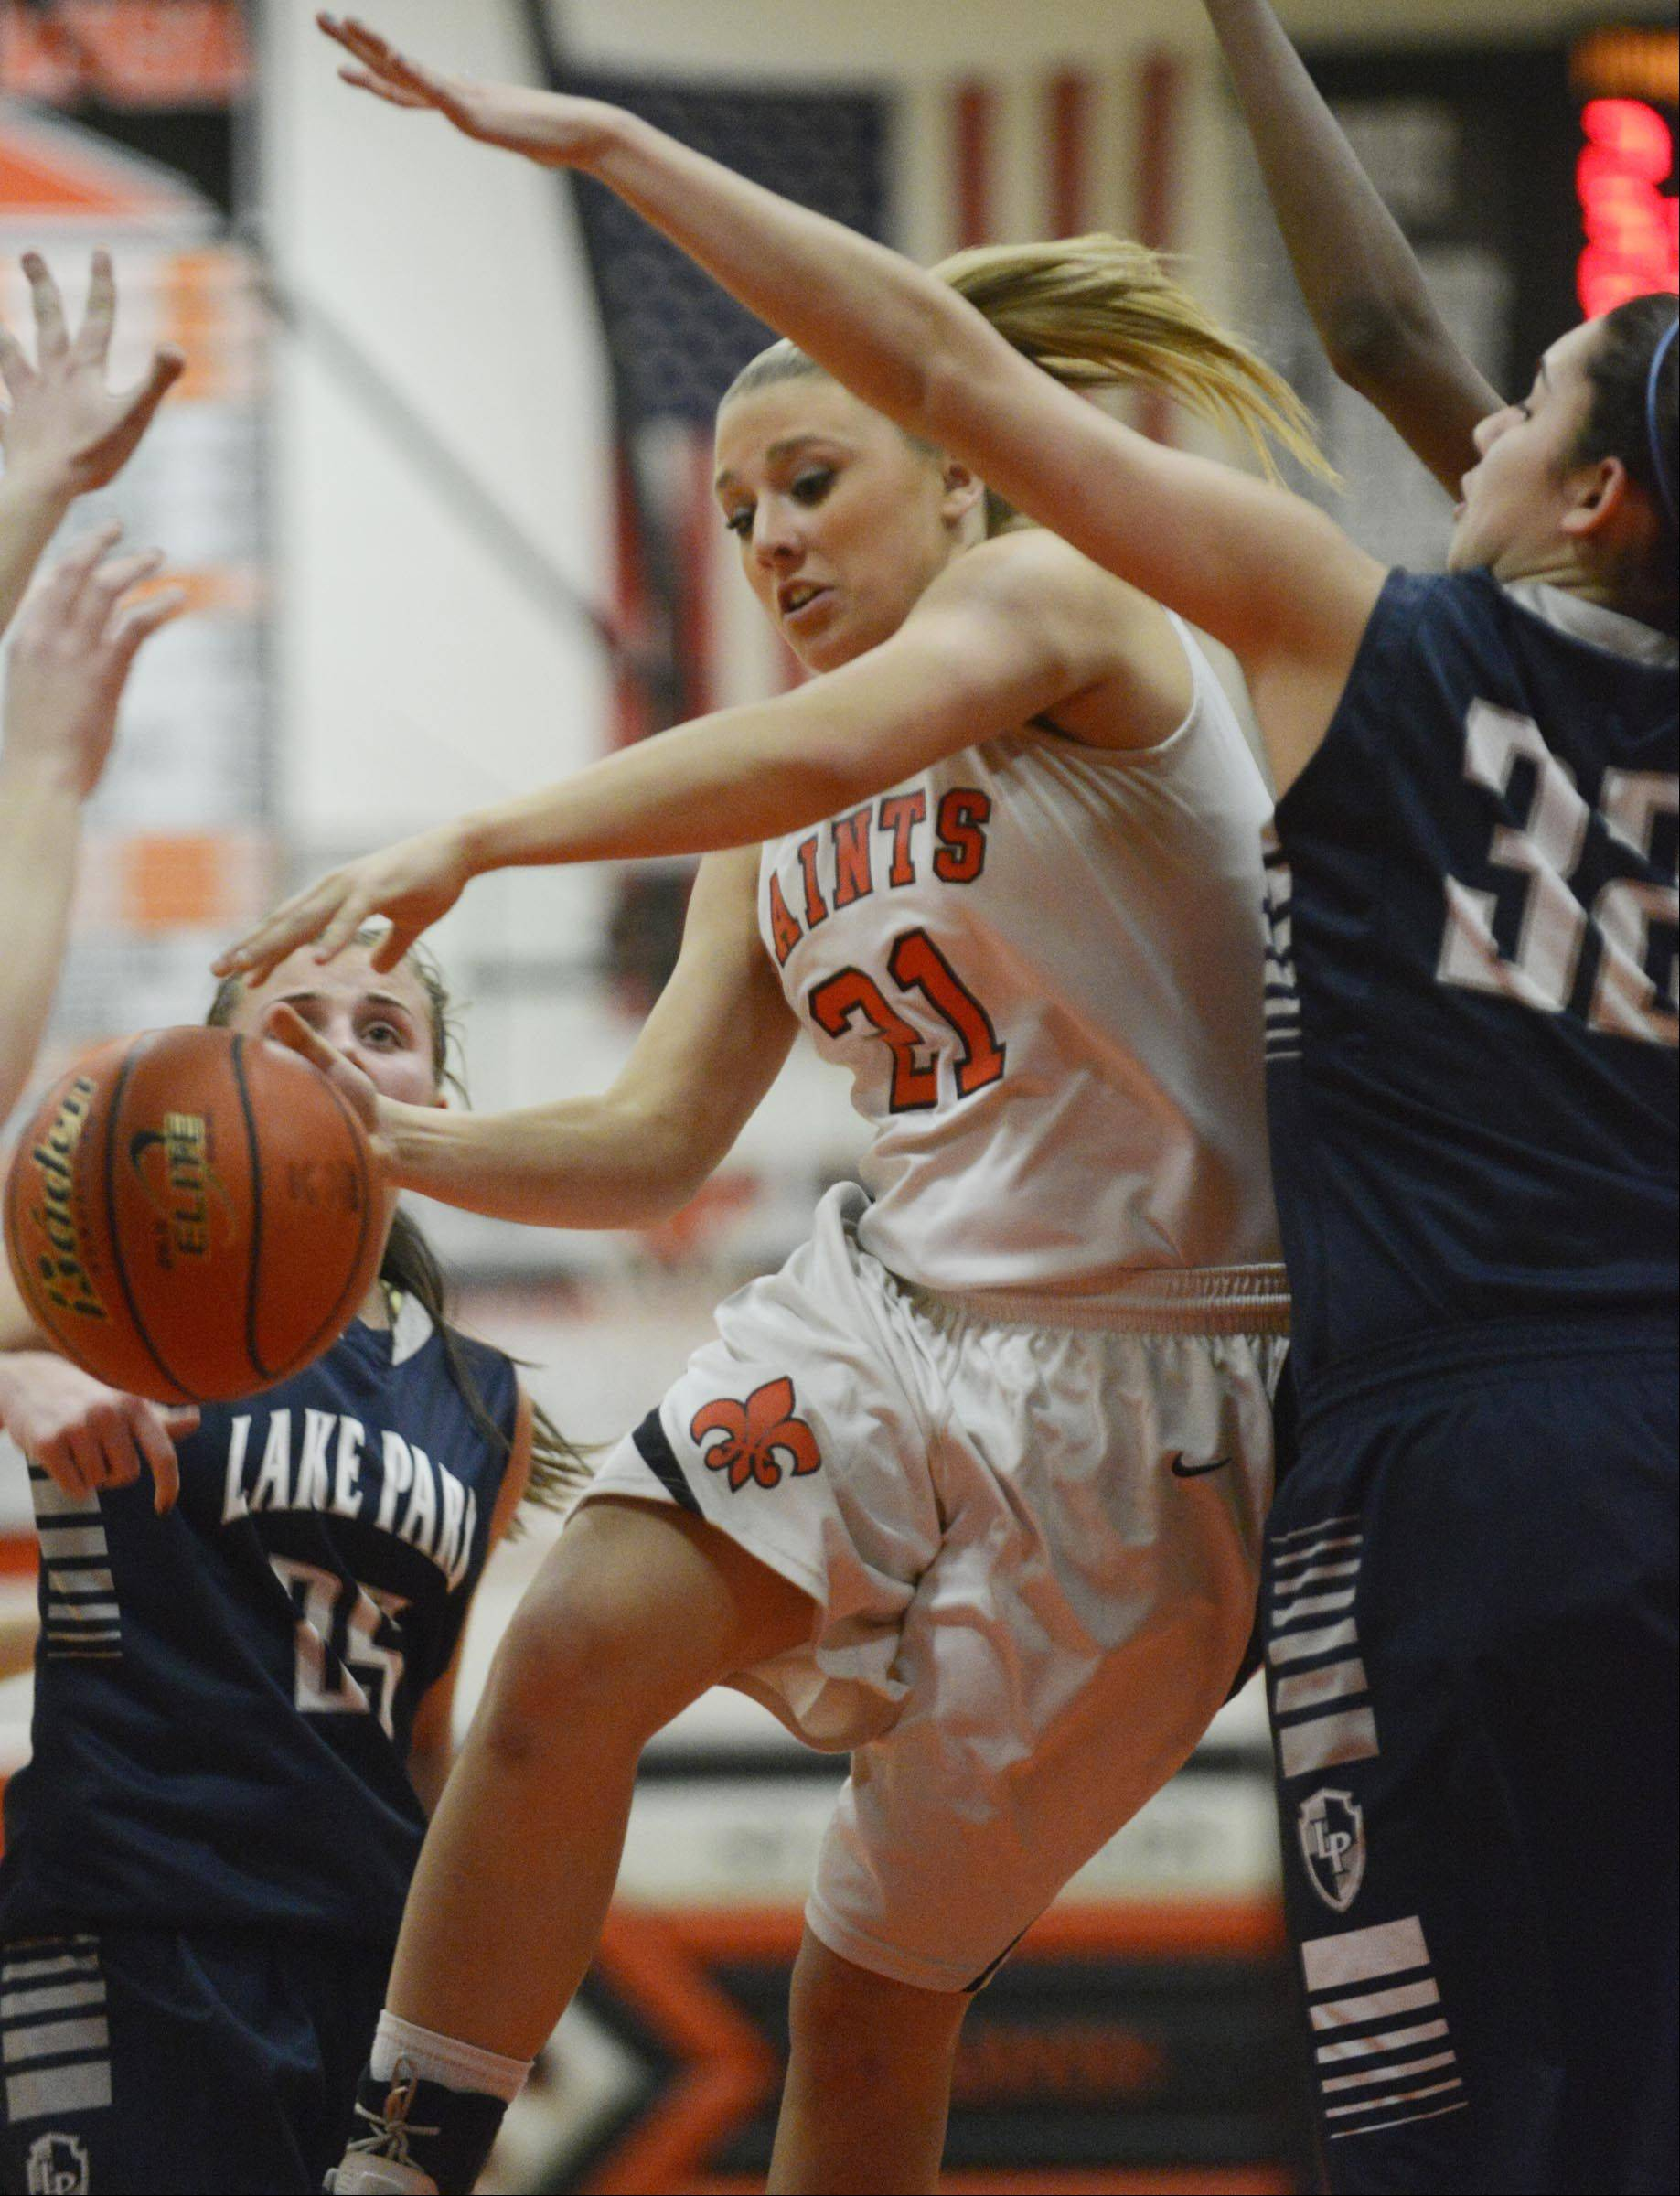 St. Charles East's Katie Claussner loses control of the ball against Lake Park's Maria Zepeda .